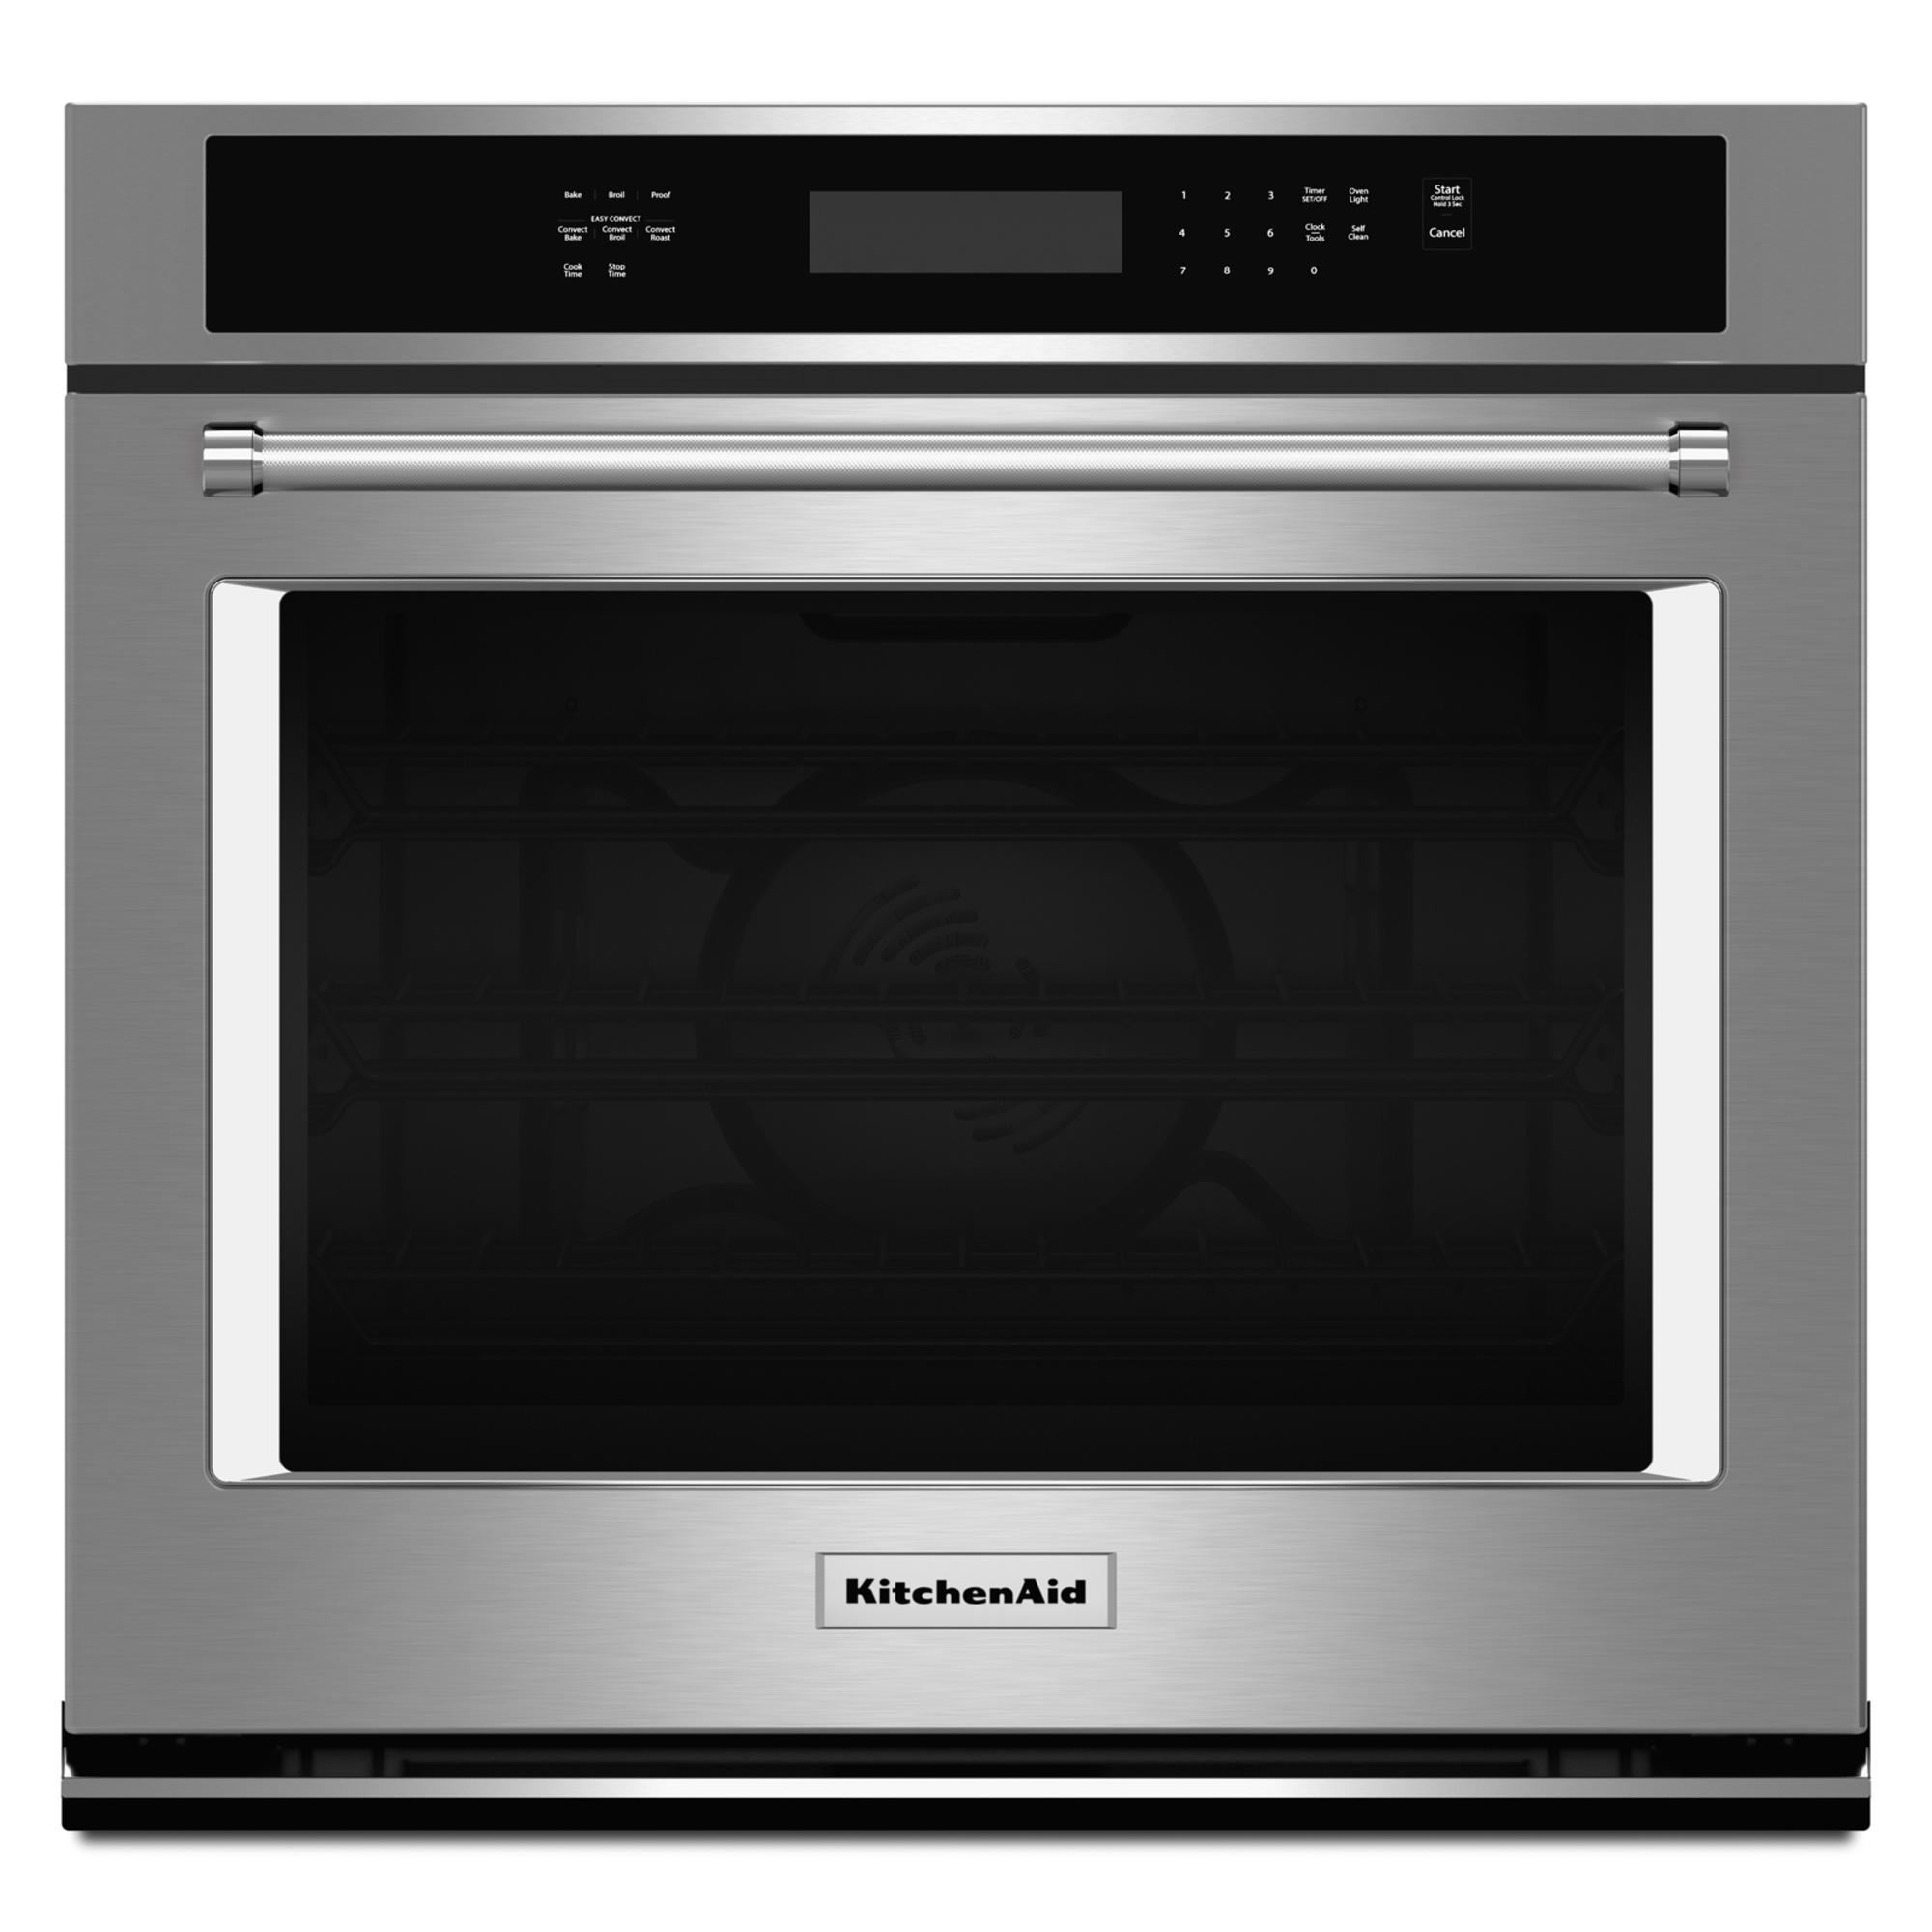 KitchenAid KOSE507ESS 4.3 cu. ft. Single Wall Oven w/ Even-Heat™ True Convection - Stainless Steel